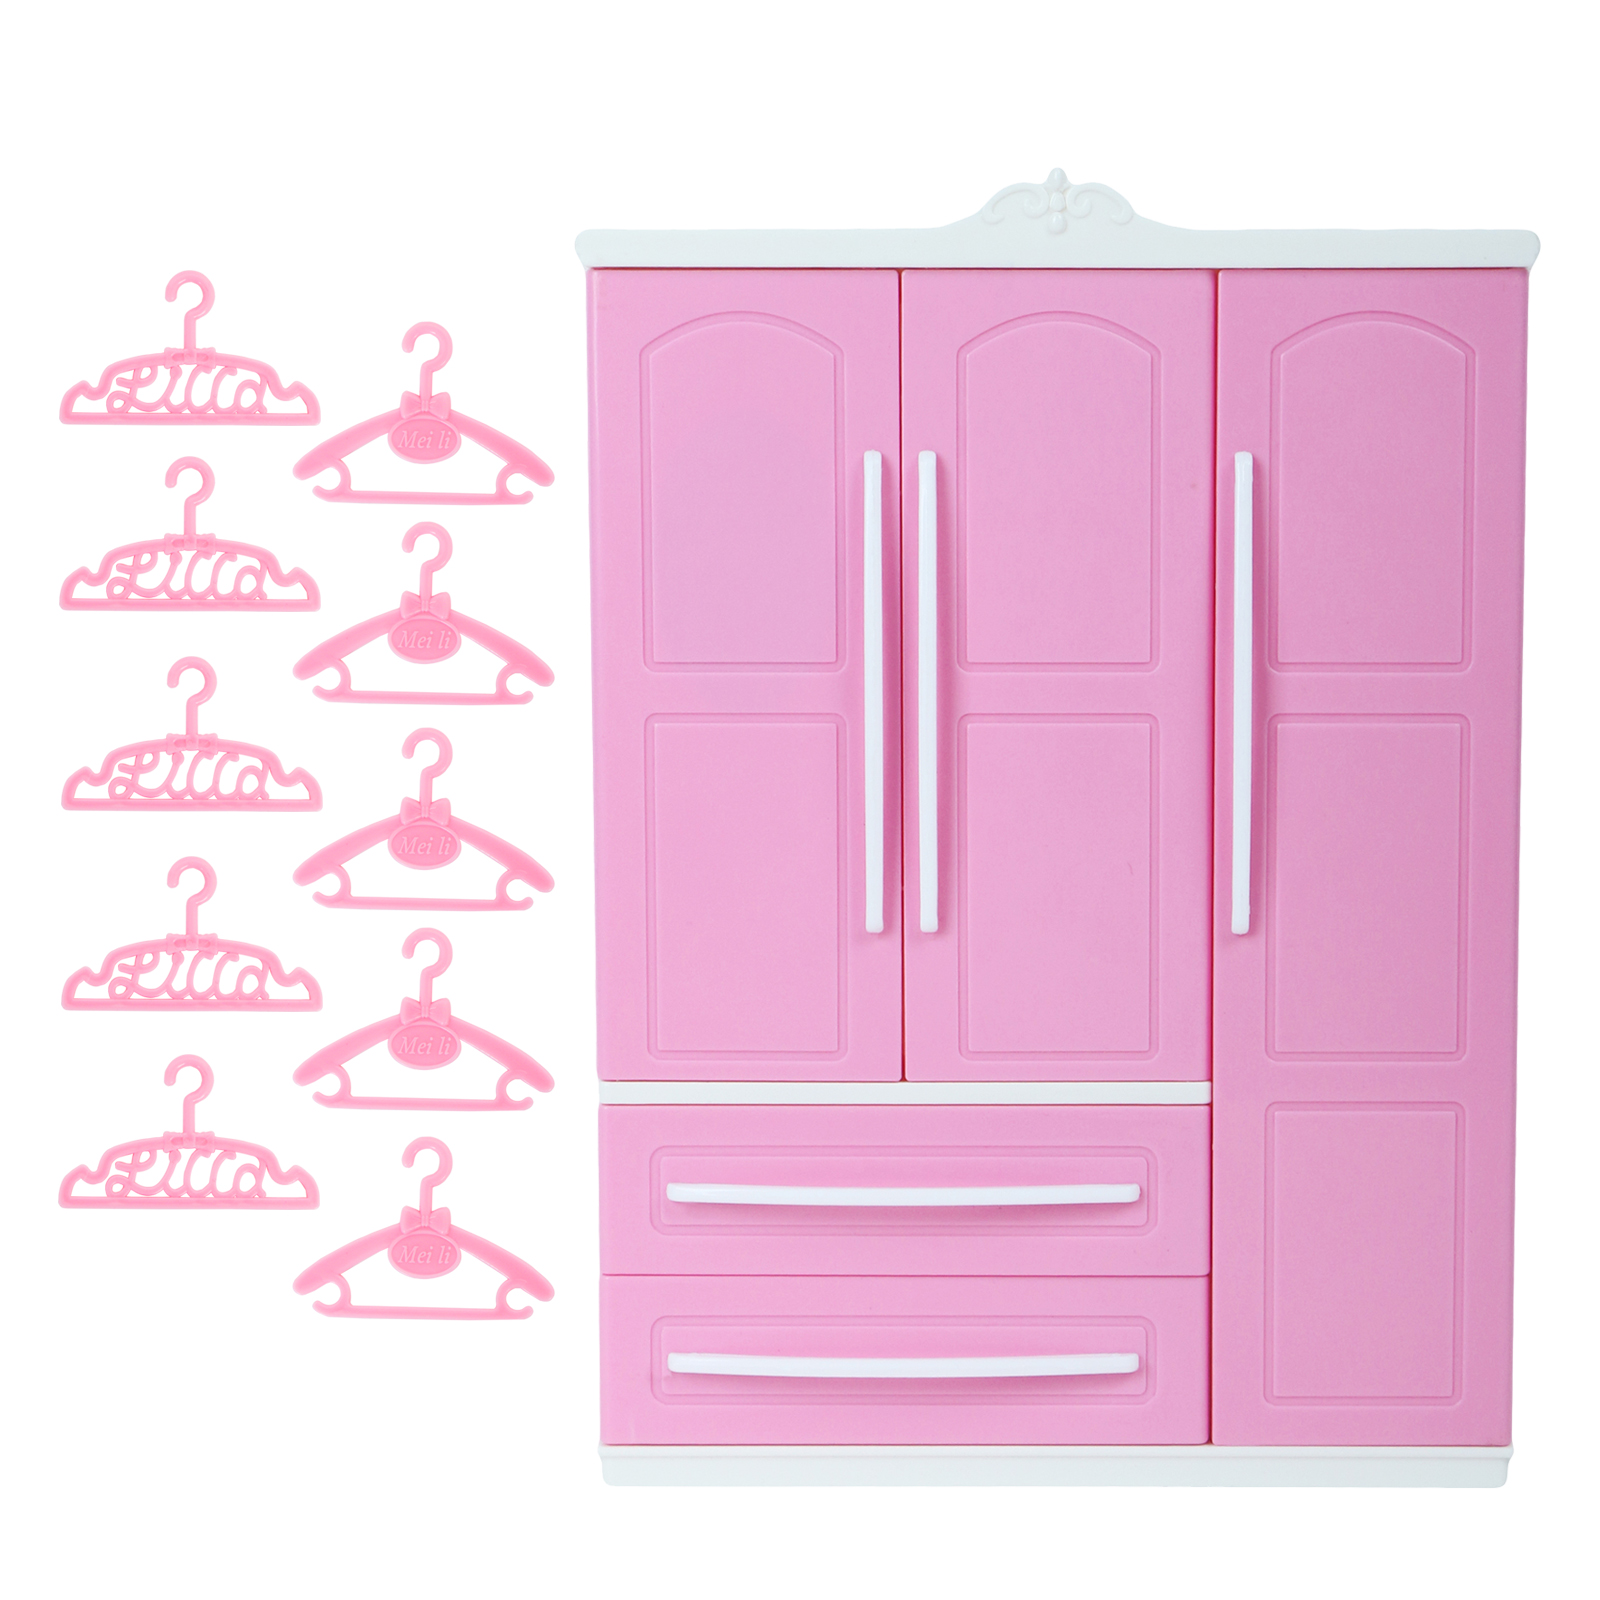 1x Pink Cute Doll Wardrobe + 10x Mix Hangers Mini Closet Princess Dollhouse Furniture Accessories For Barbie Doll Girl's Toys